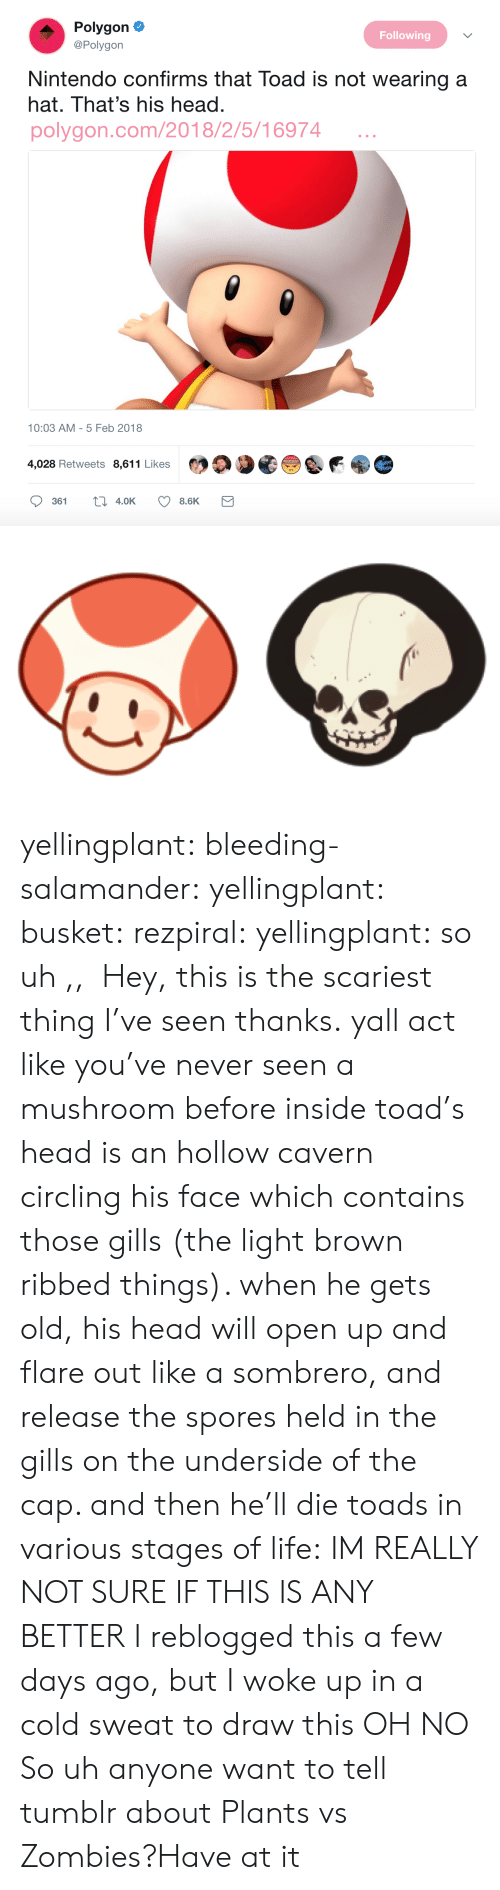 Plants Vs: Polygon  Following  @Polygon  Nintendo confirms that Toad is not wearing a  hat. That's his head.  polygon.com/2018/2/5/16974  10:03 AM - 5 Feb 2018  4,028 Retweets 8,611 Likes yellingplant:  bleeding-salamander:  yellingplant:  busket:  rezpiral:  yellingplant:  so uh ,,   Hey, this is the scariest thing I've seen thanks.  yall act like you've never seen a mushroom before inside toad's head is an hollow cavern circling his face which contains those gills (the light brown ribbed things). when he gets old, his head will open up and flare out like a sombrero, and release the spores held in the gills on the underside of the cap. and then he'll die toads in various stages of life:  IM REALLY NOT SURE IF THIS IS ANY BETTER  I reblogged this a few days ago, but I woke up in a cold sweat to draw this  OH NO   So uh anyone want to tell tumblr about Plants vs Zombies?Have at it